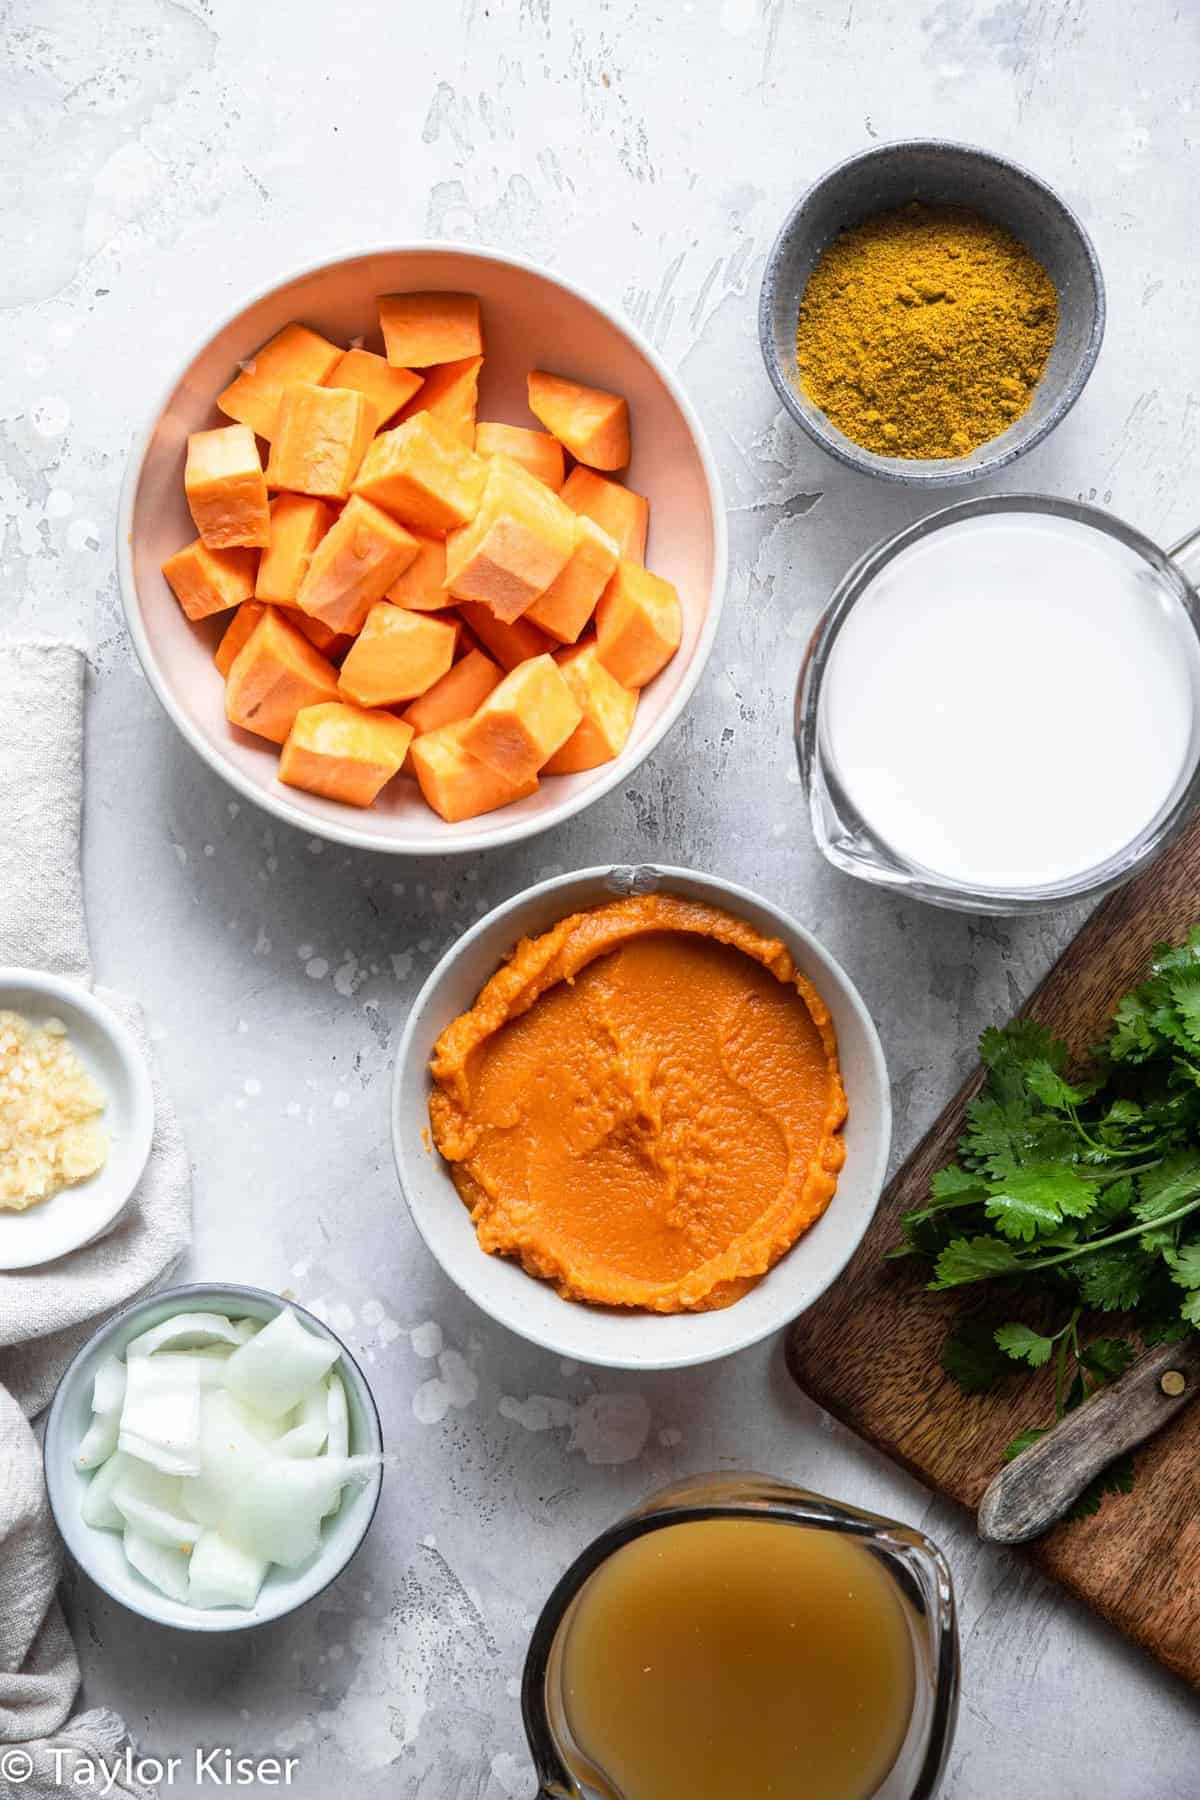 Ingredients to make a pumpkin curry recipe on a table